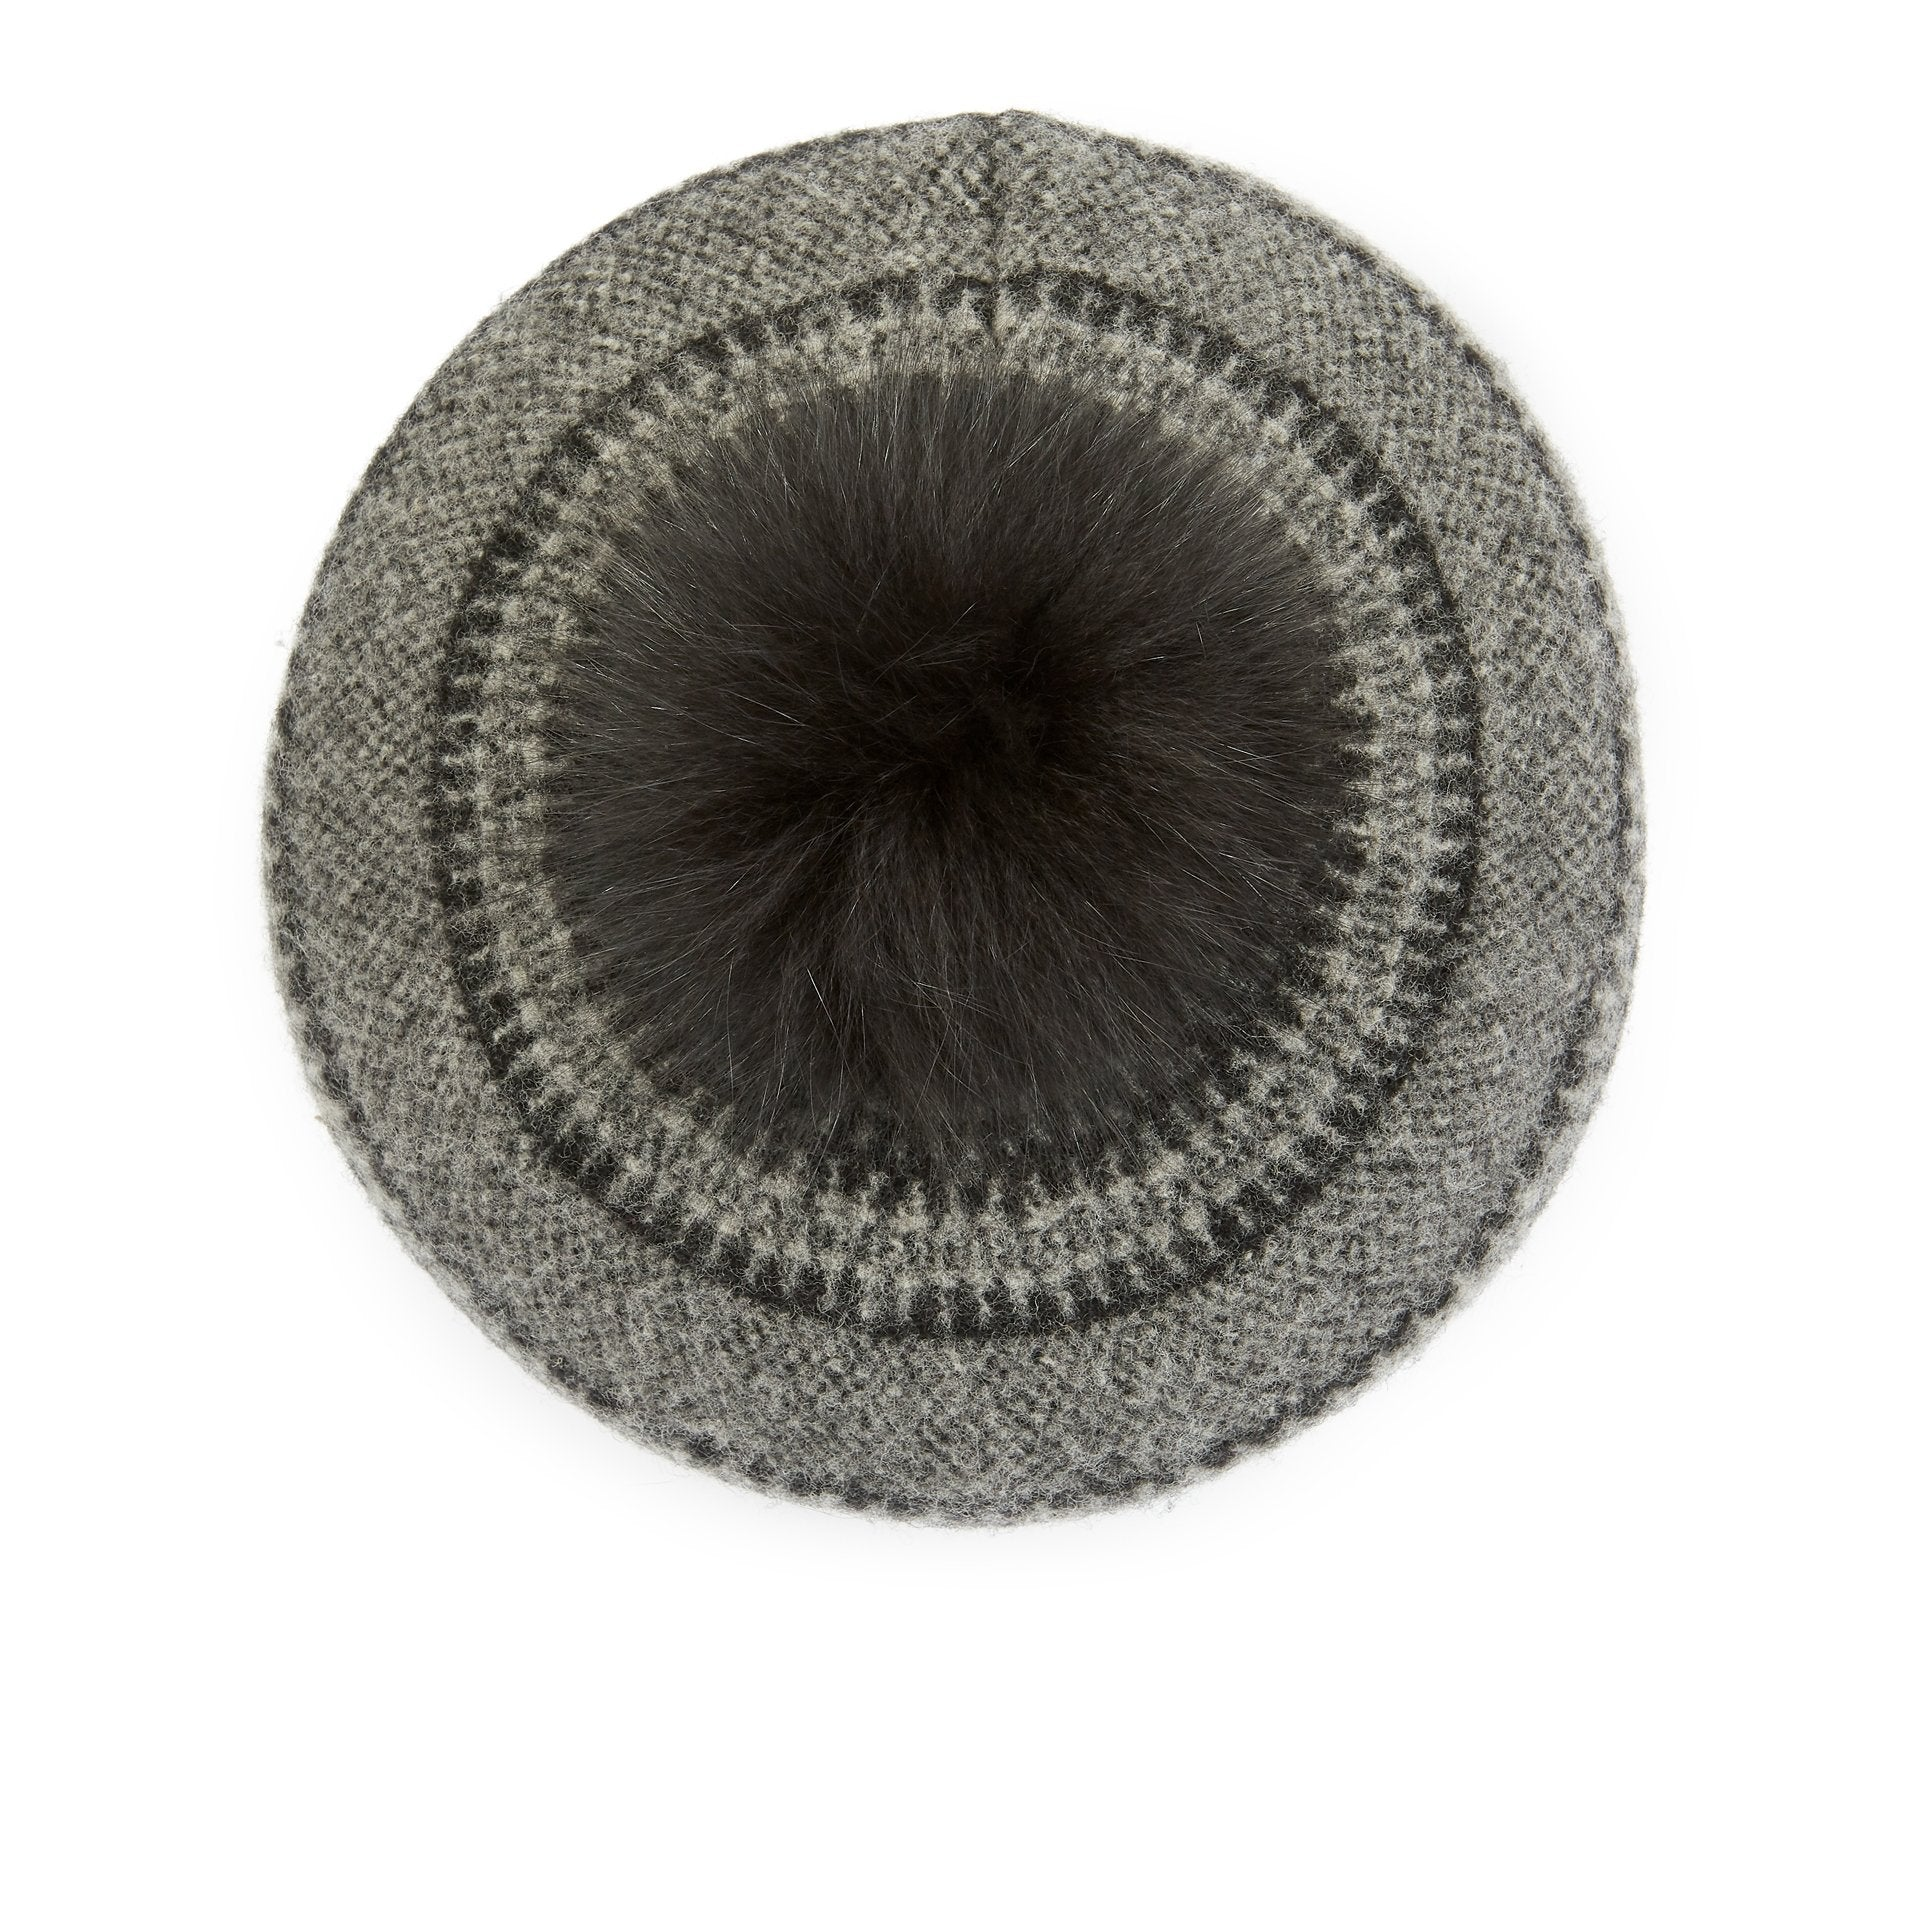 Forbes jacquard beret - Women's Beanies - Lock & Co. Hatters London UK